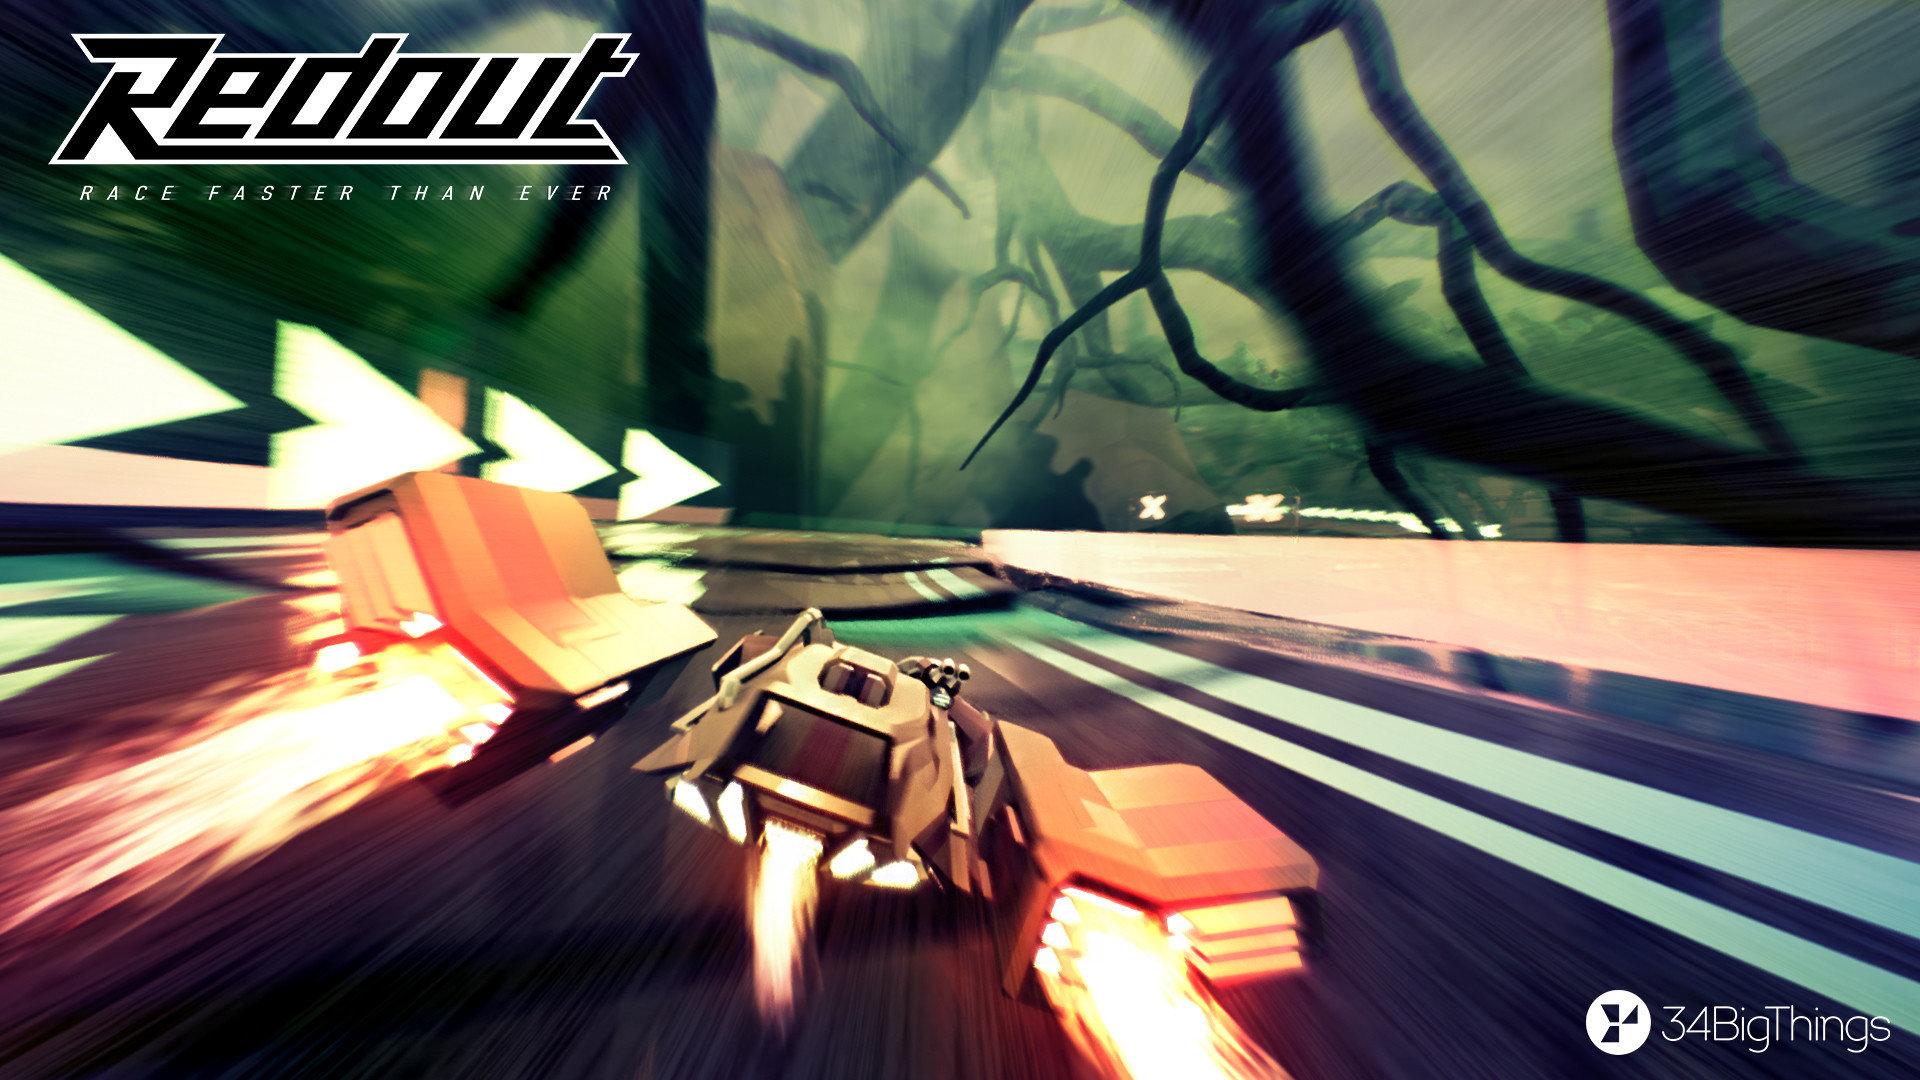 Redout Screenshot 2